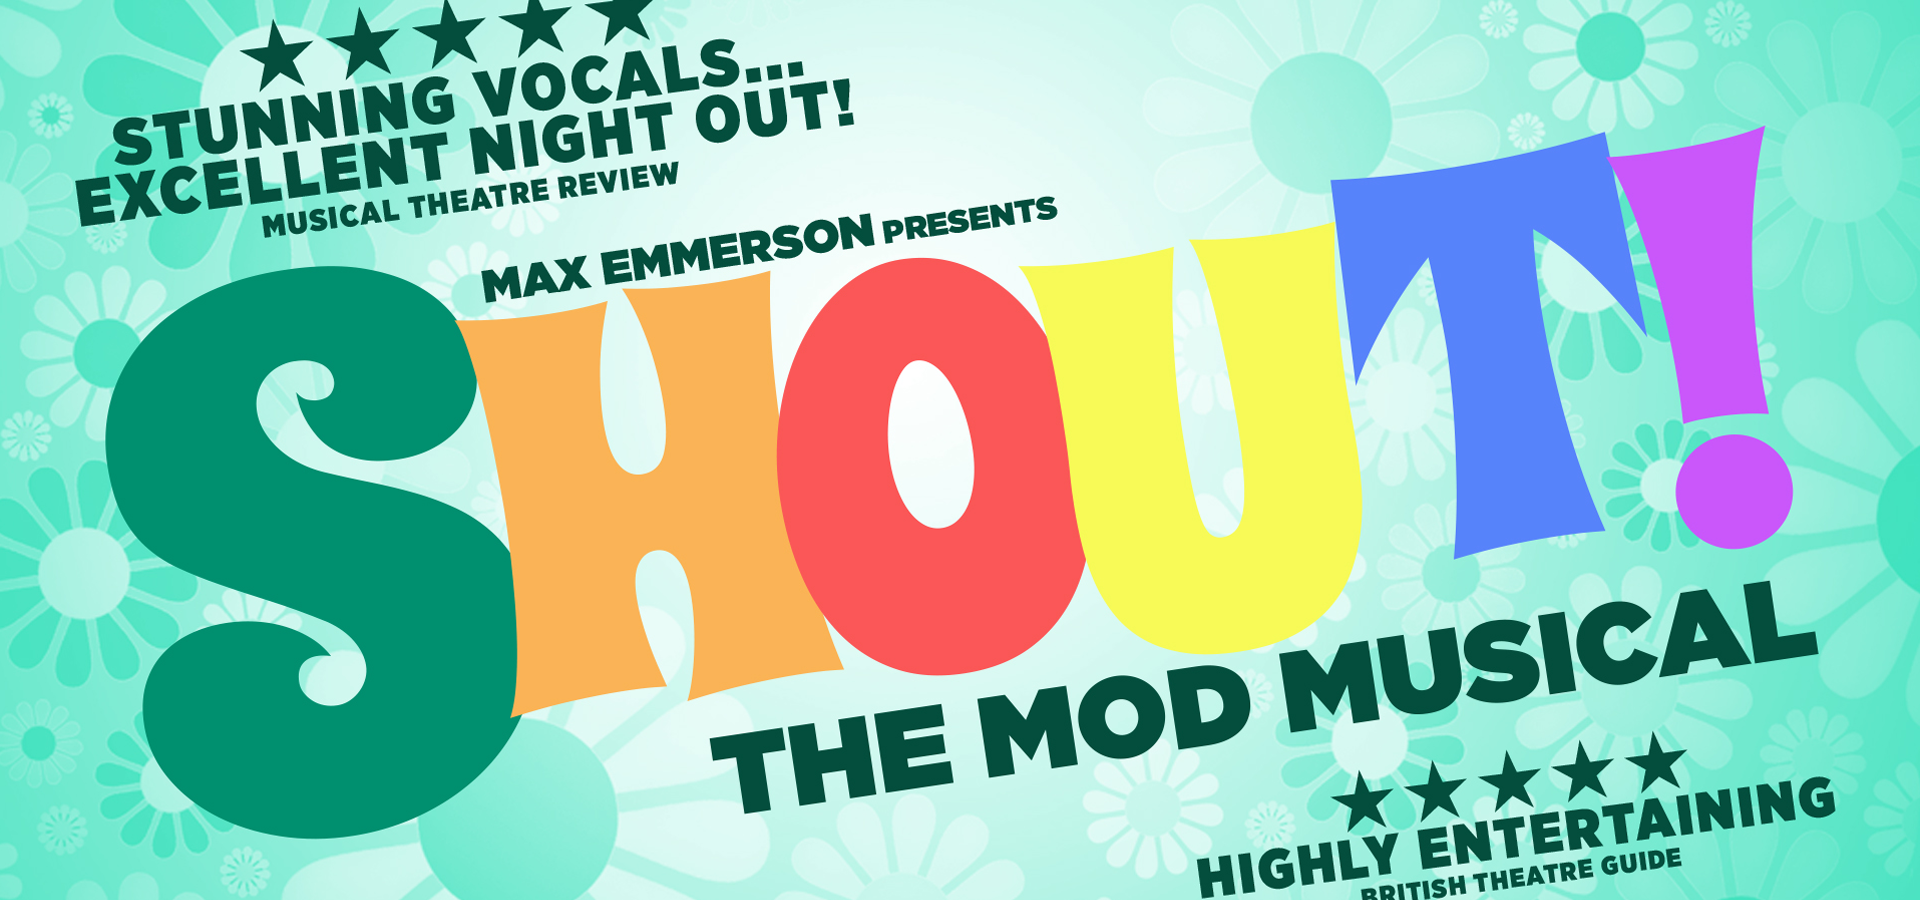 Shout!: The Mod Musical